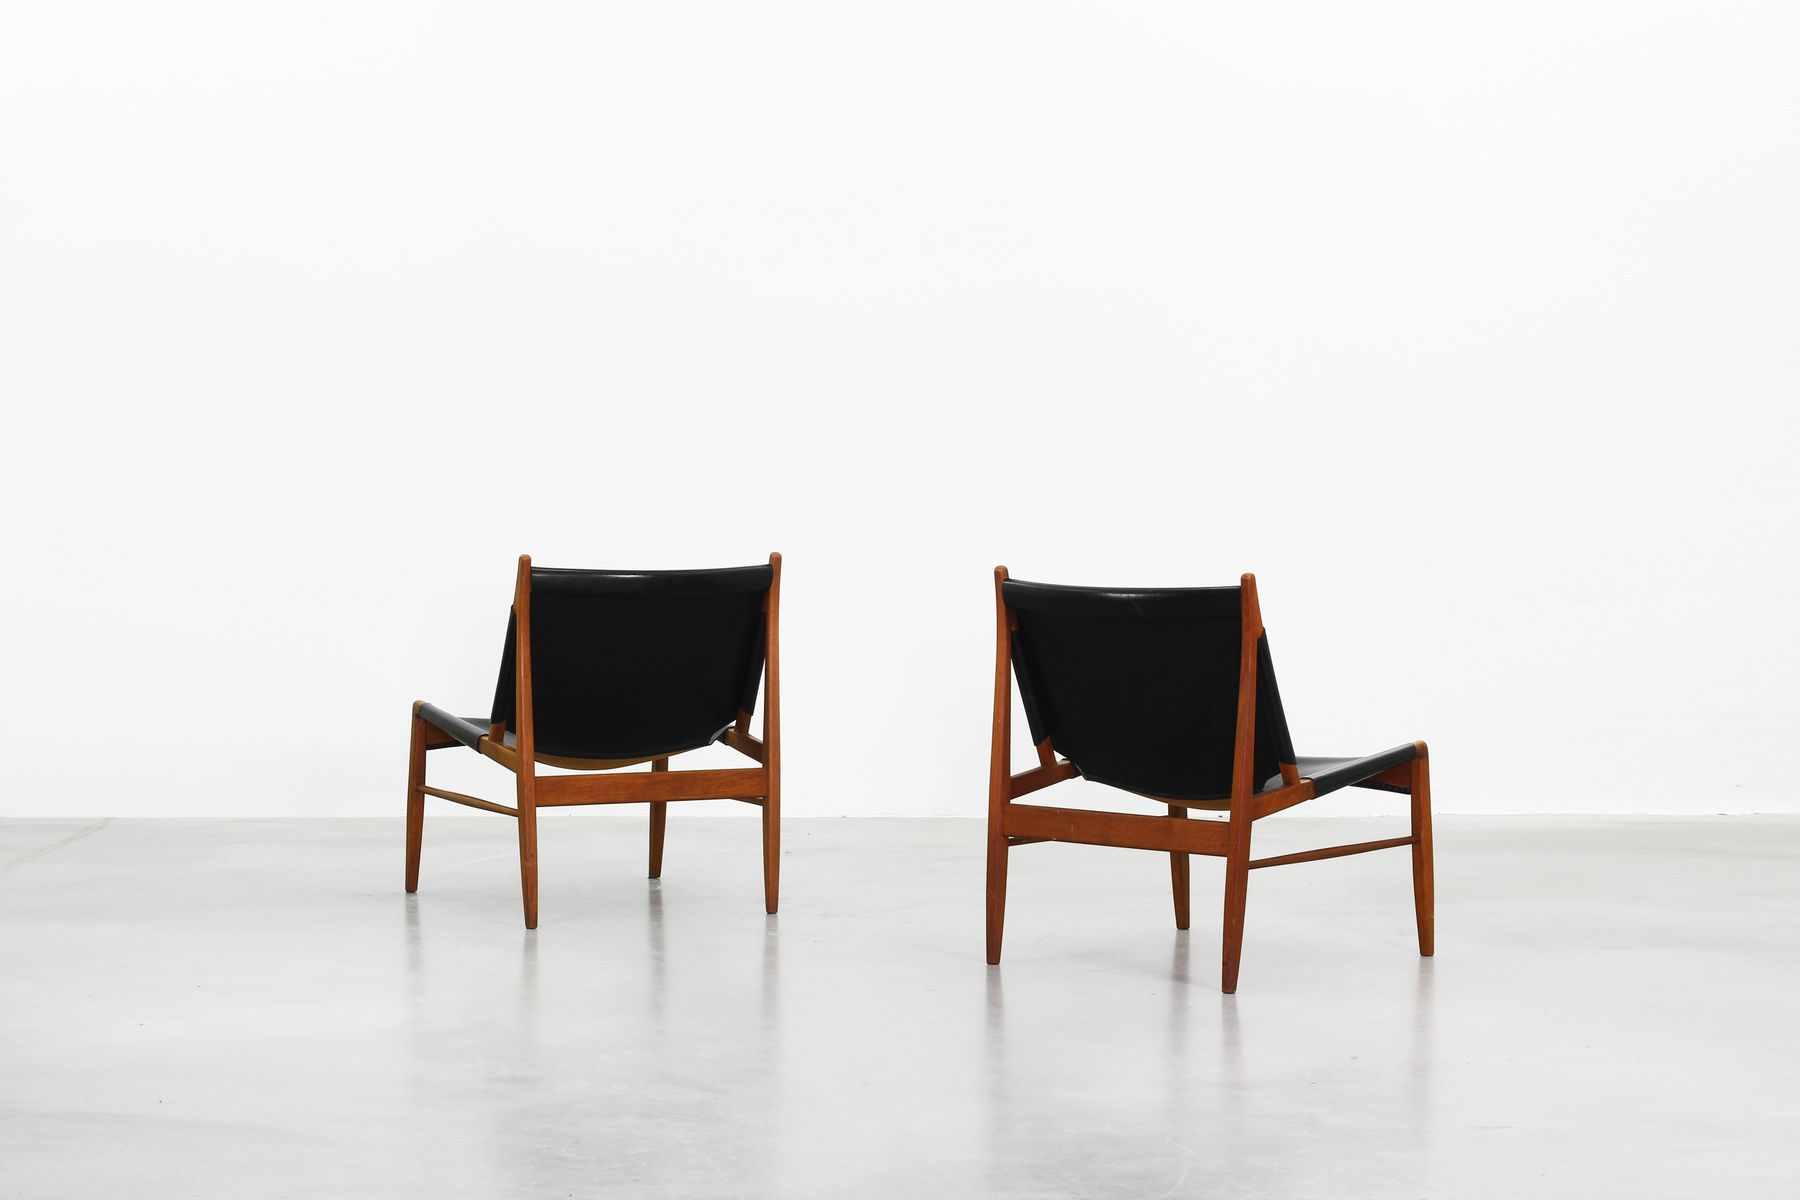 lounge chairs by franz xaver lutz for wk möbel 1958 set of 2 for sale at pamono